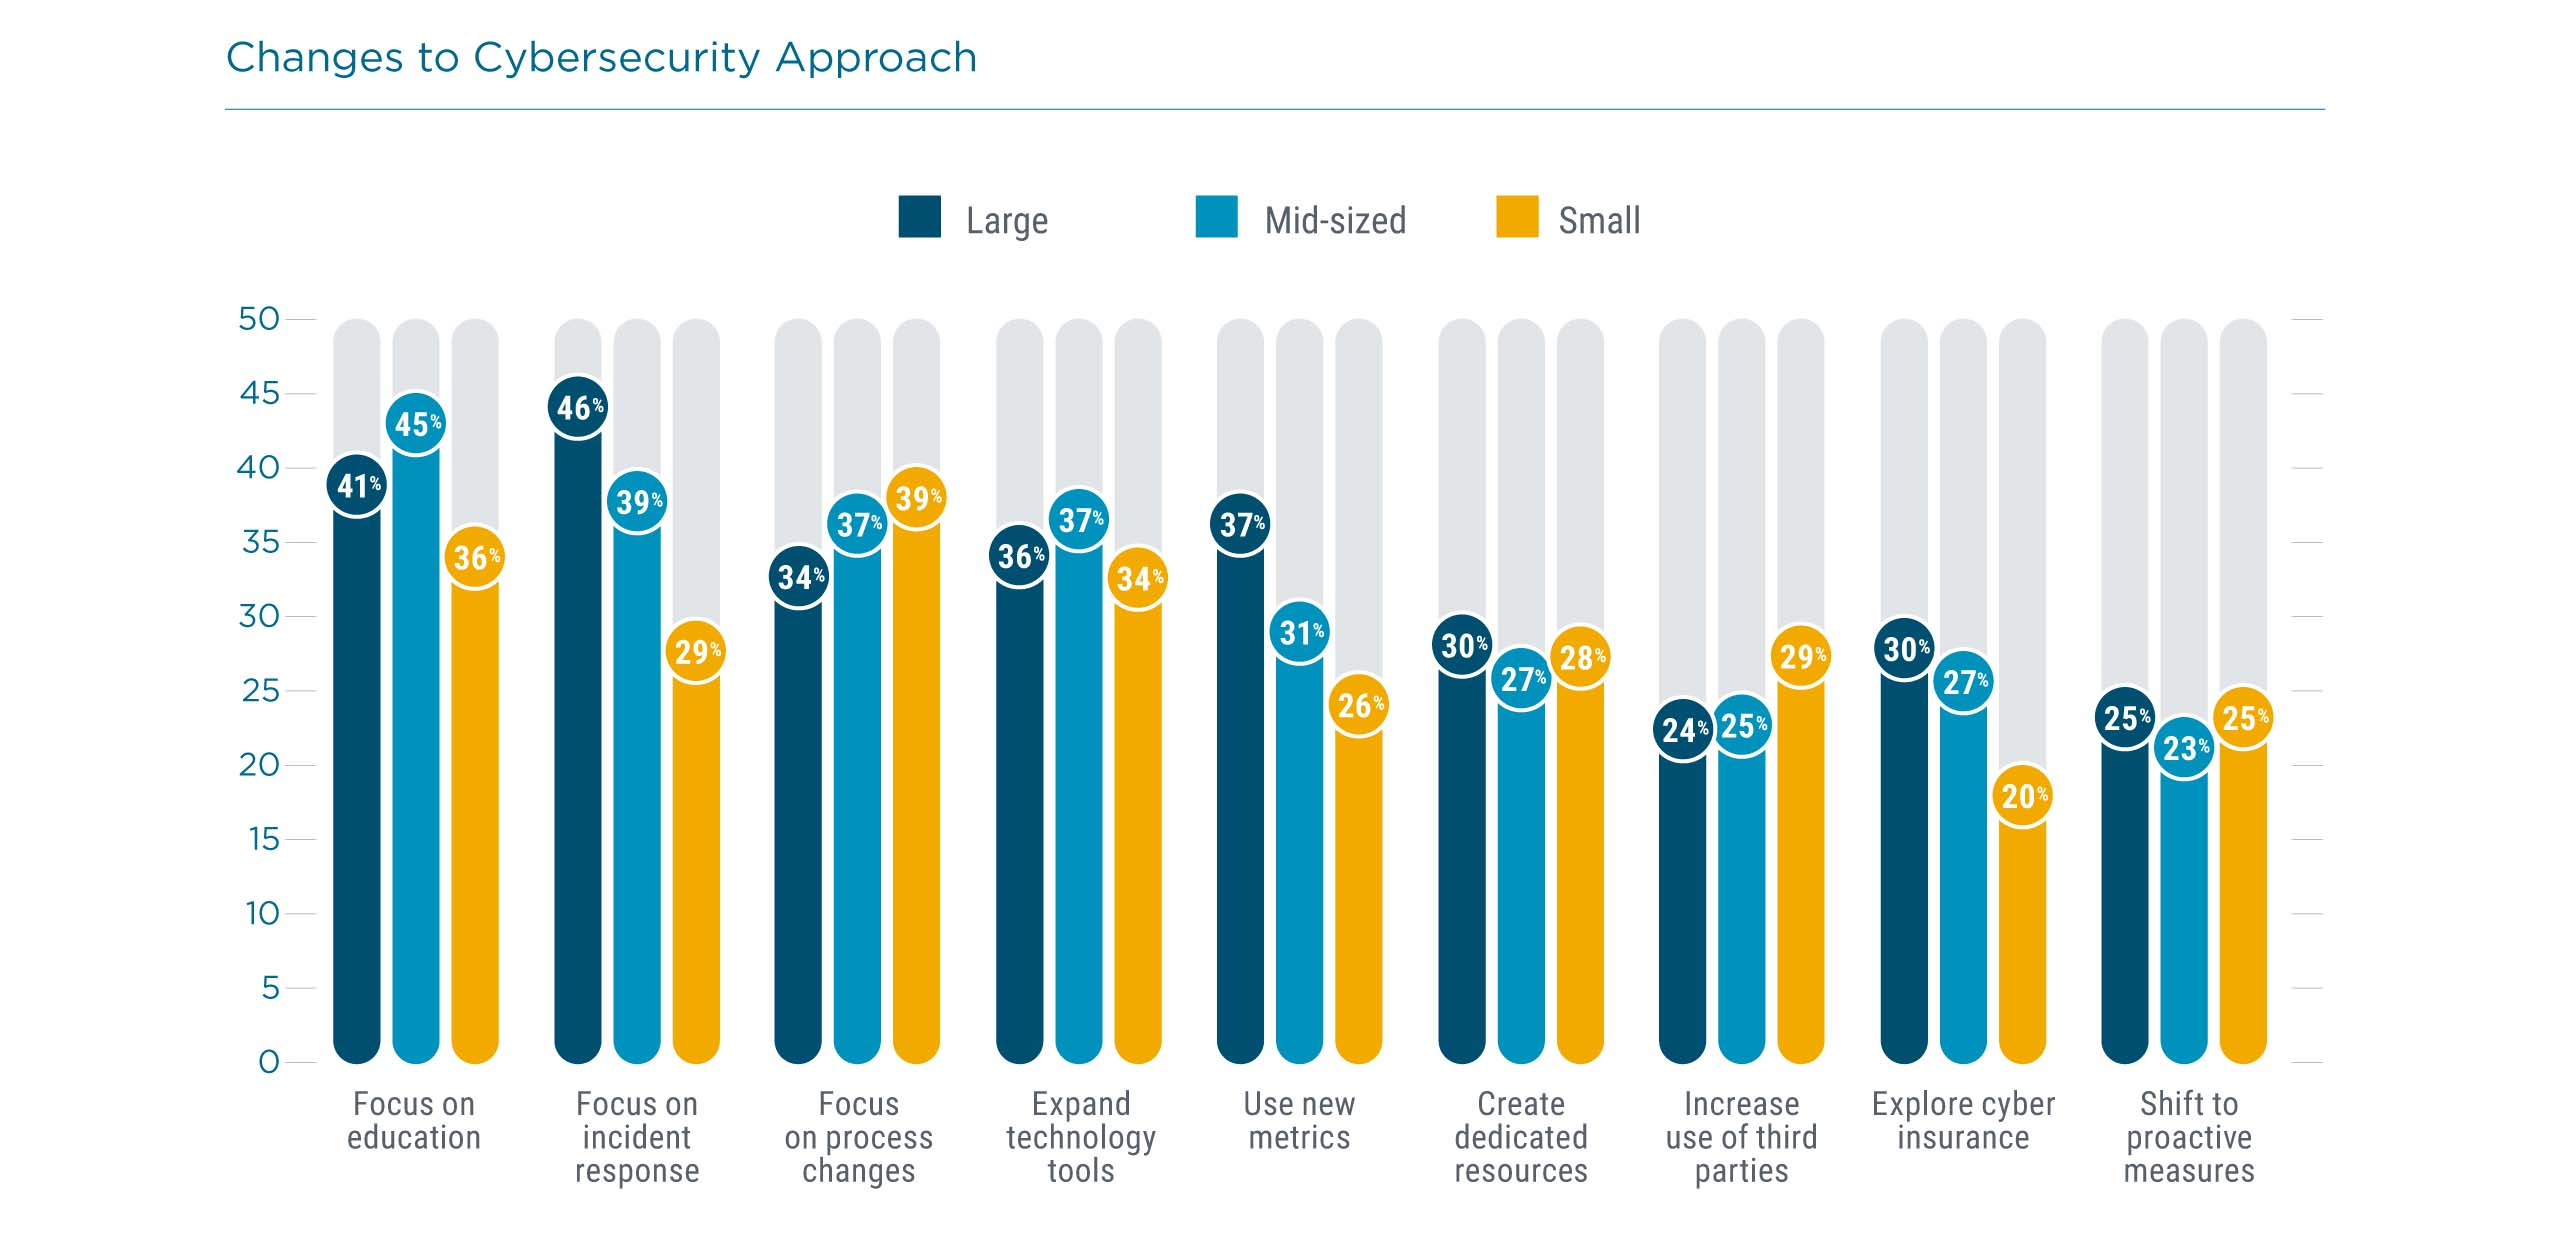 Changes to Cybersecurity Approach